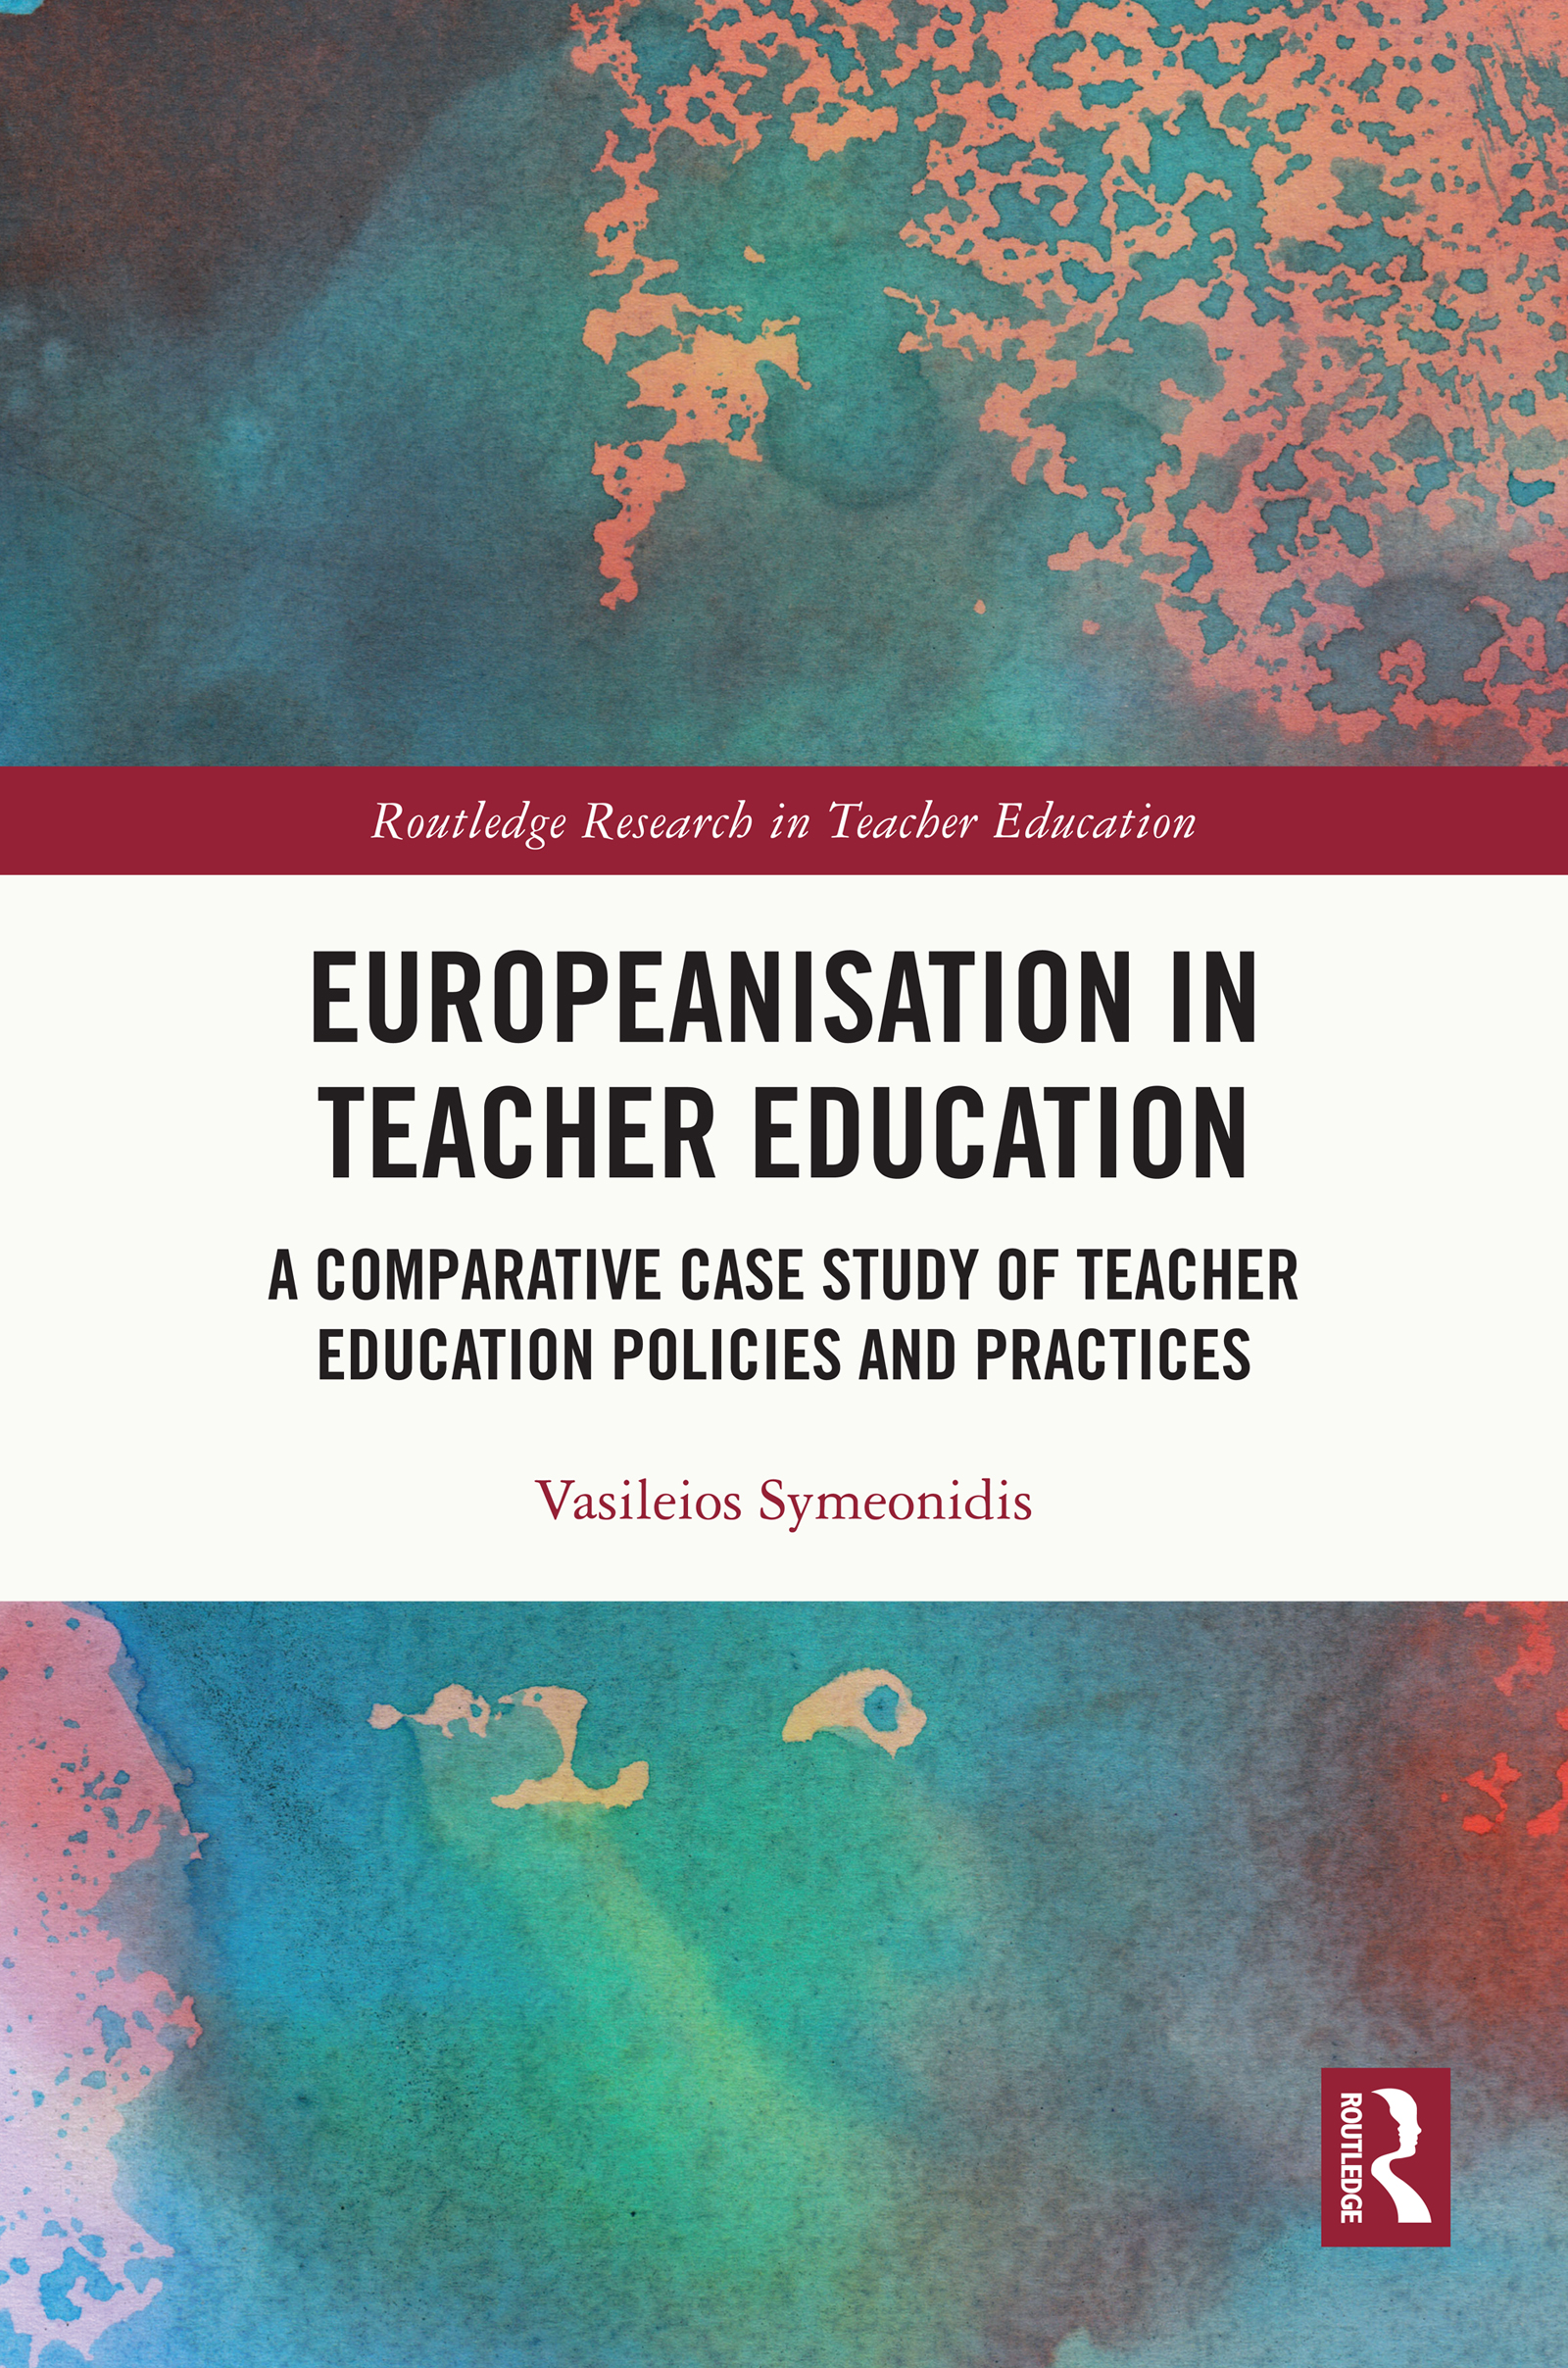 Teacher education policy and practice in Greece